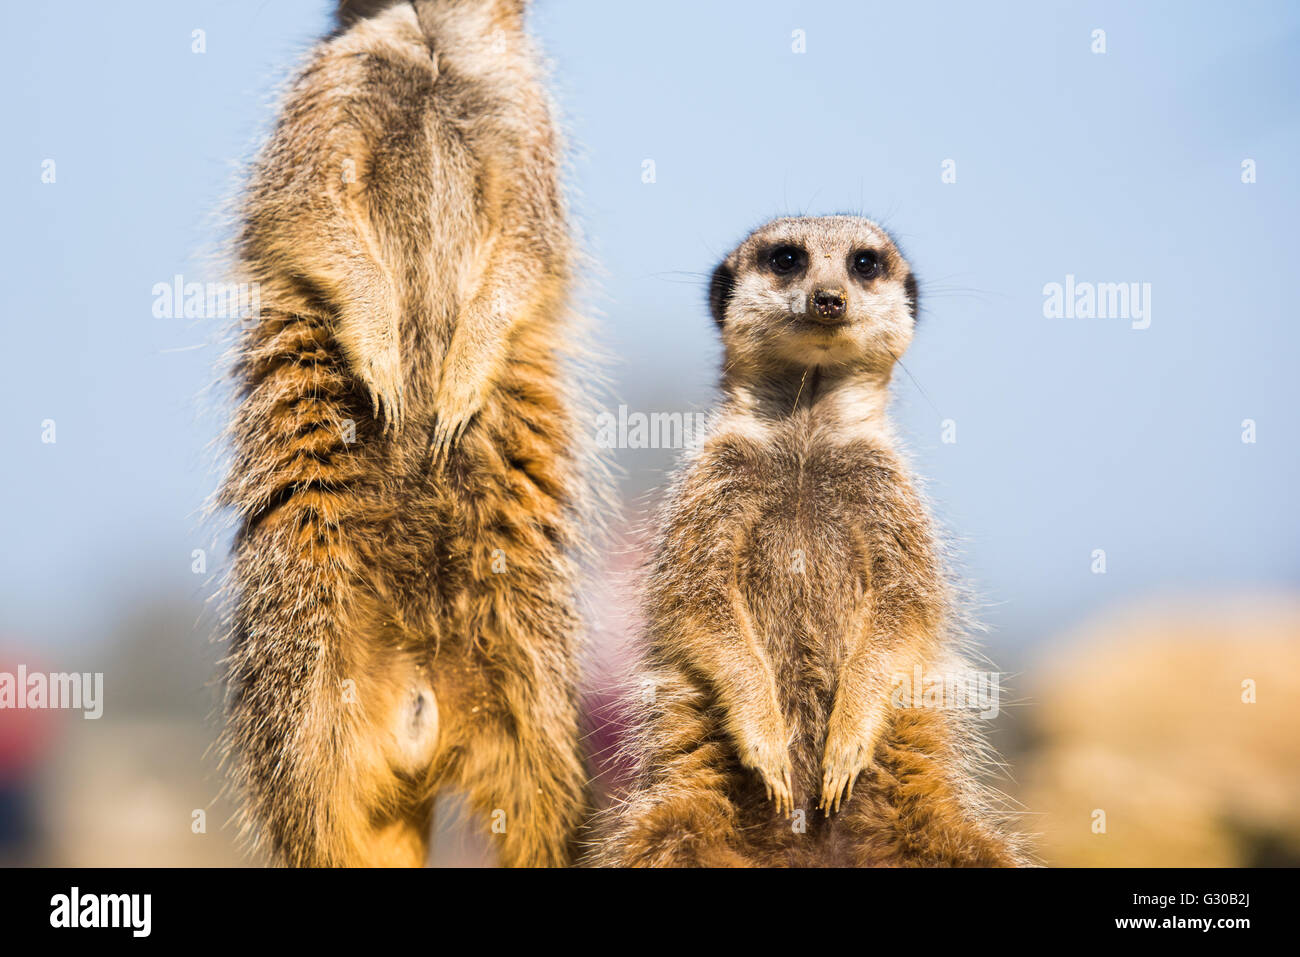 The meerkat (suricate) (Suricata suricatta), United Kingdom, Europe - Stock Image